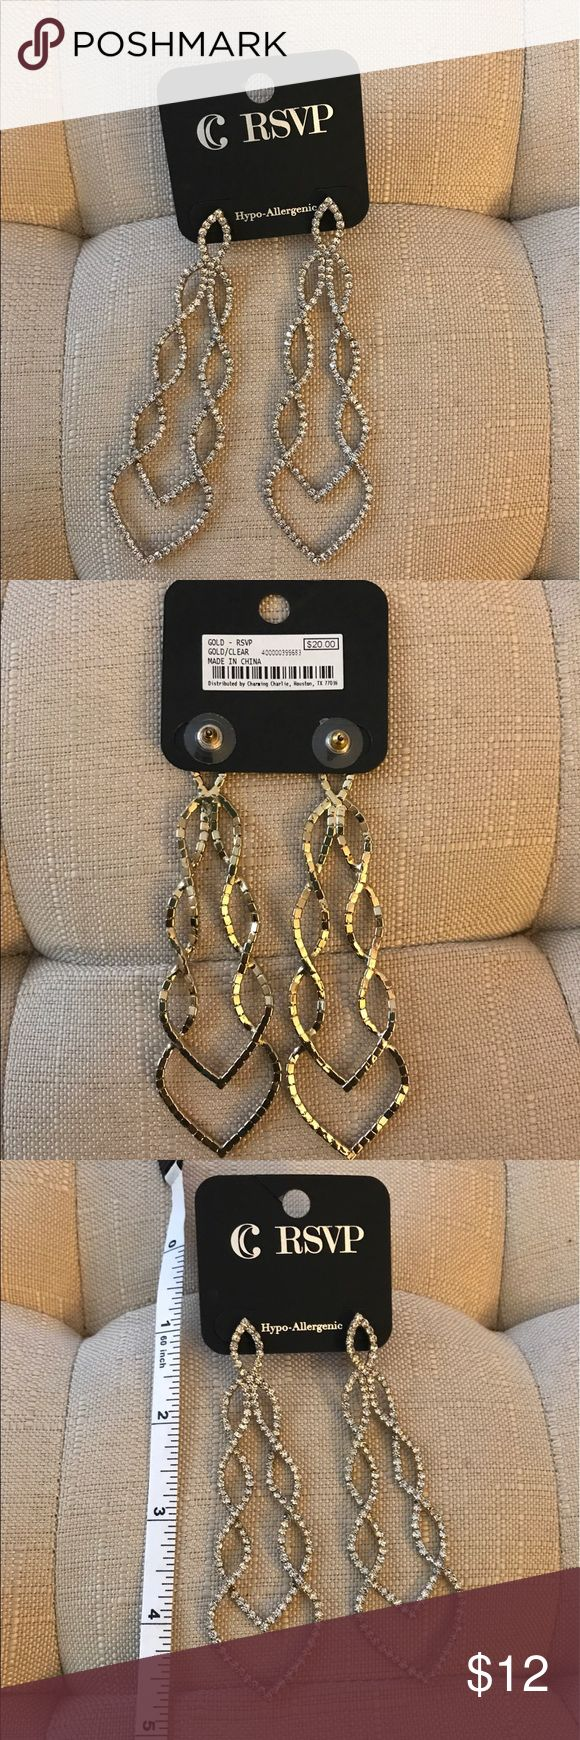 DIAMOND CHANDLER EARRINGS by CHARMING CHARLIE DIAMOND CHANDLER EARRINGS by CHARMING CHARLIE. COLOR: GOLD/CRYSTAL/DIAMOND. LIGHT WEIGHT. HYPO ALLERGENIC. CONDITION: BRAND NEW/NEVER BEEN WORN. Charming Charlie Jewelry Earrings